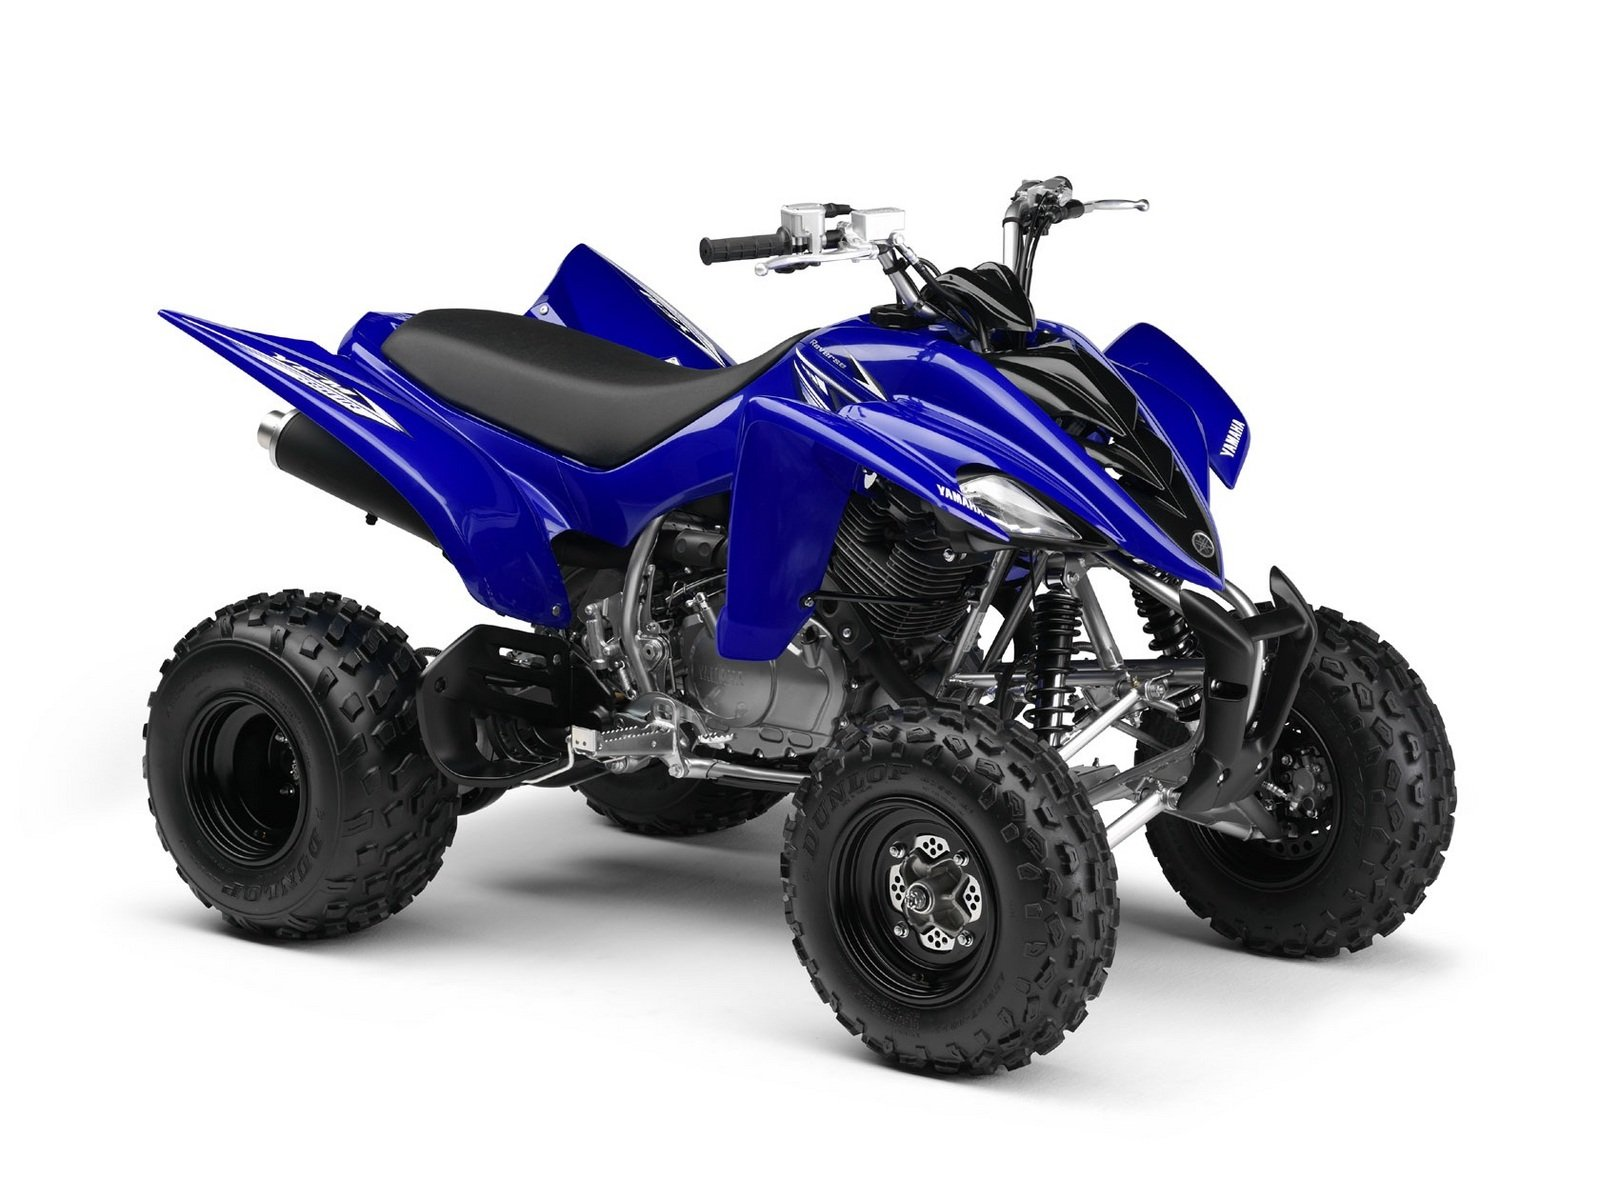 2012 yamaha raptor 350 picture 421275 motorcycle review top speed. Black Bedroom Furniture Sets. Home Design Ideas